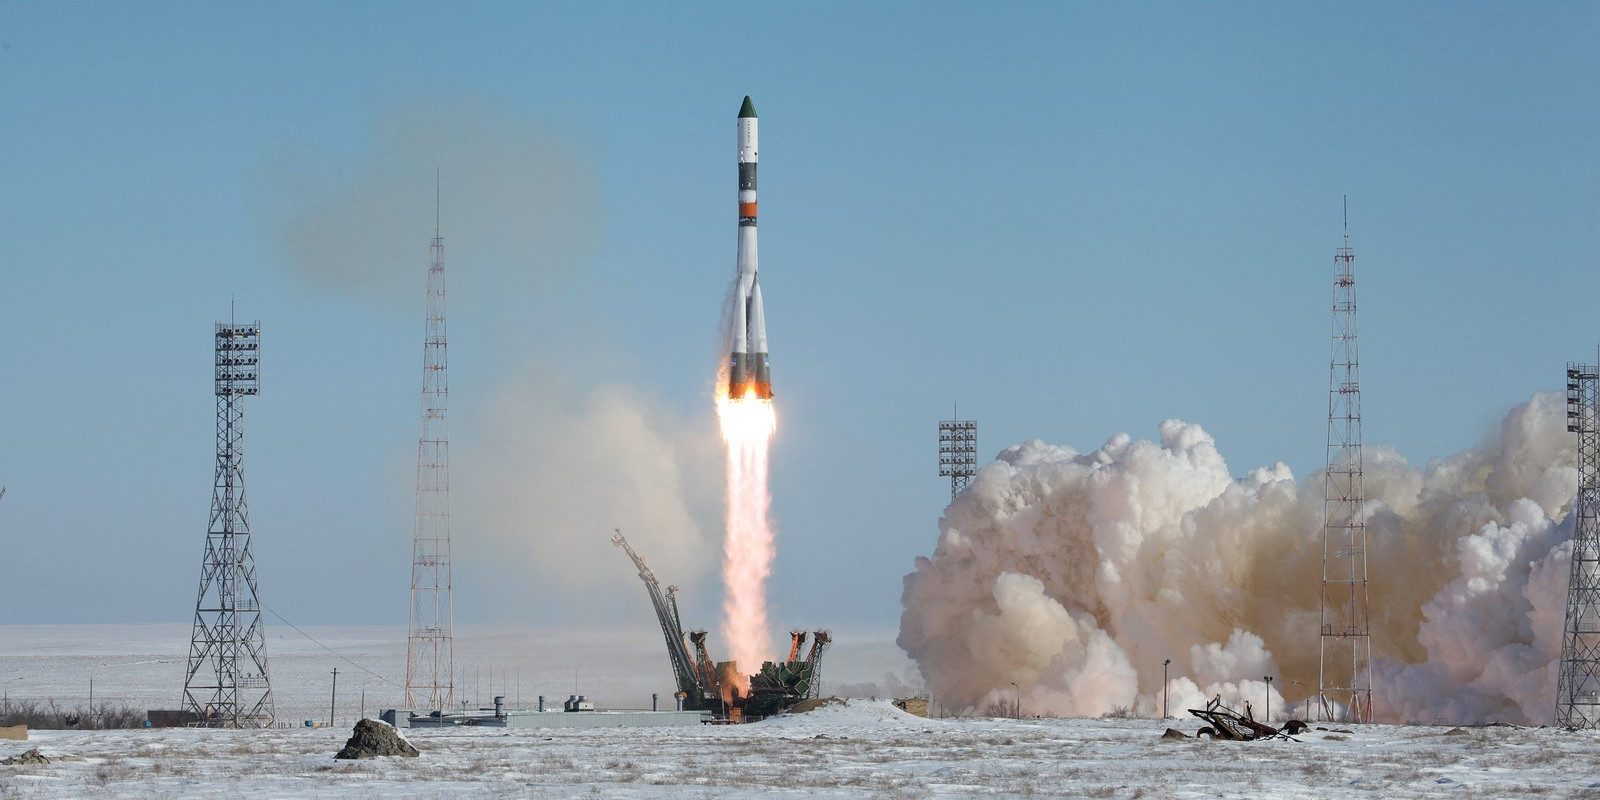 Soyuz-U launch vehicle together with the cargo transport spacecraft Progress MS-05